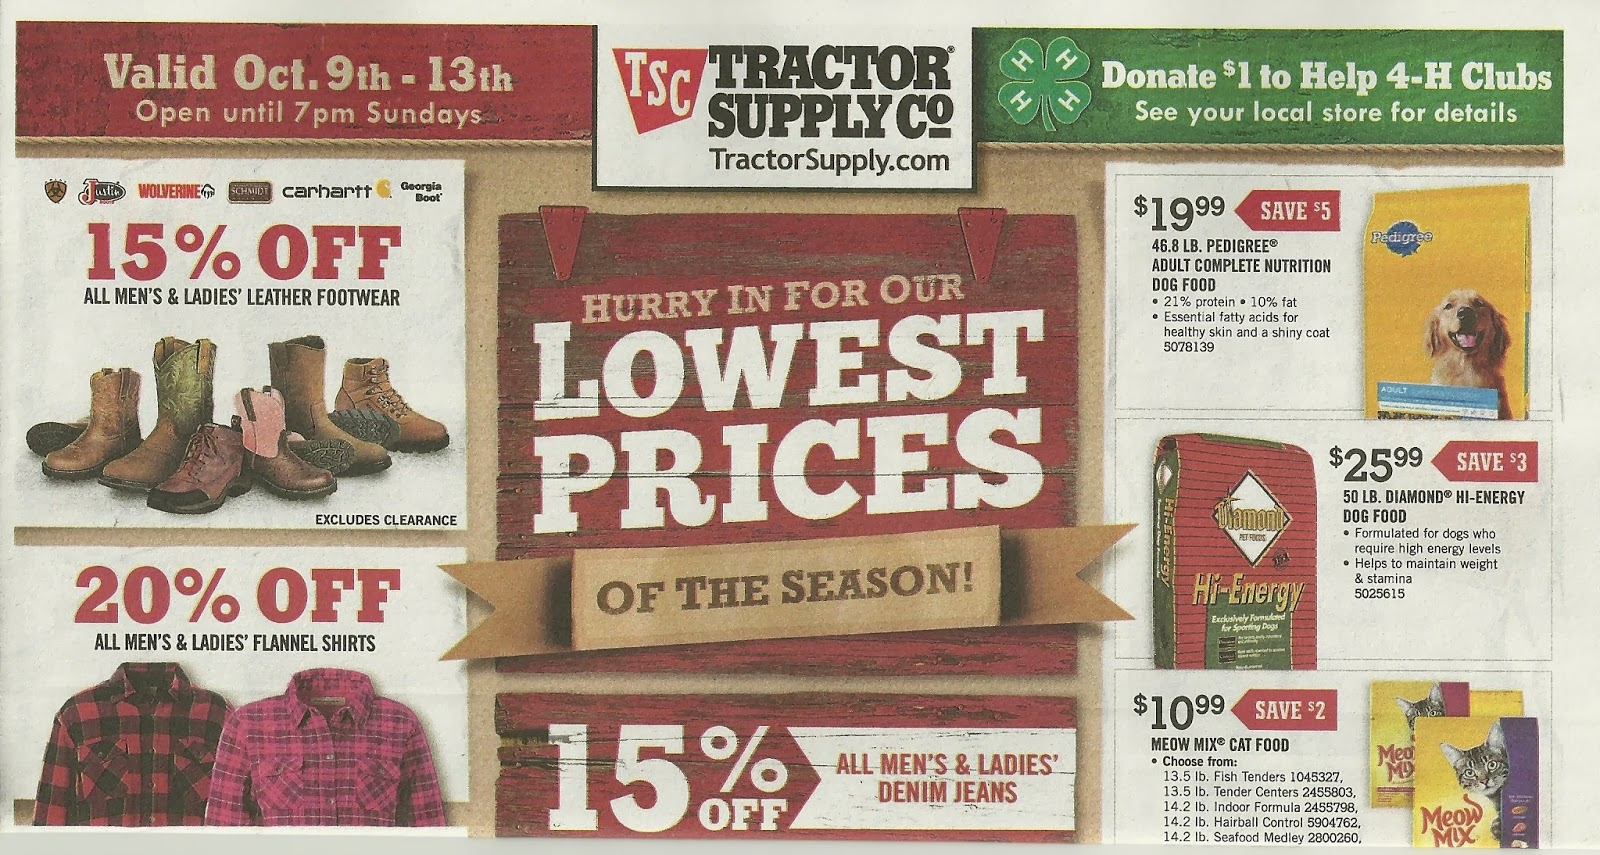 graphic regarding Tractor Supply Coupons Printable known as Tractor shipping retailer discount coupons printable 2018 : Dora coupon code